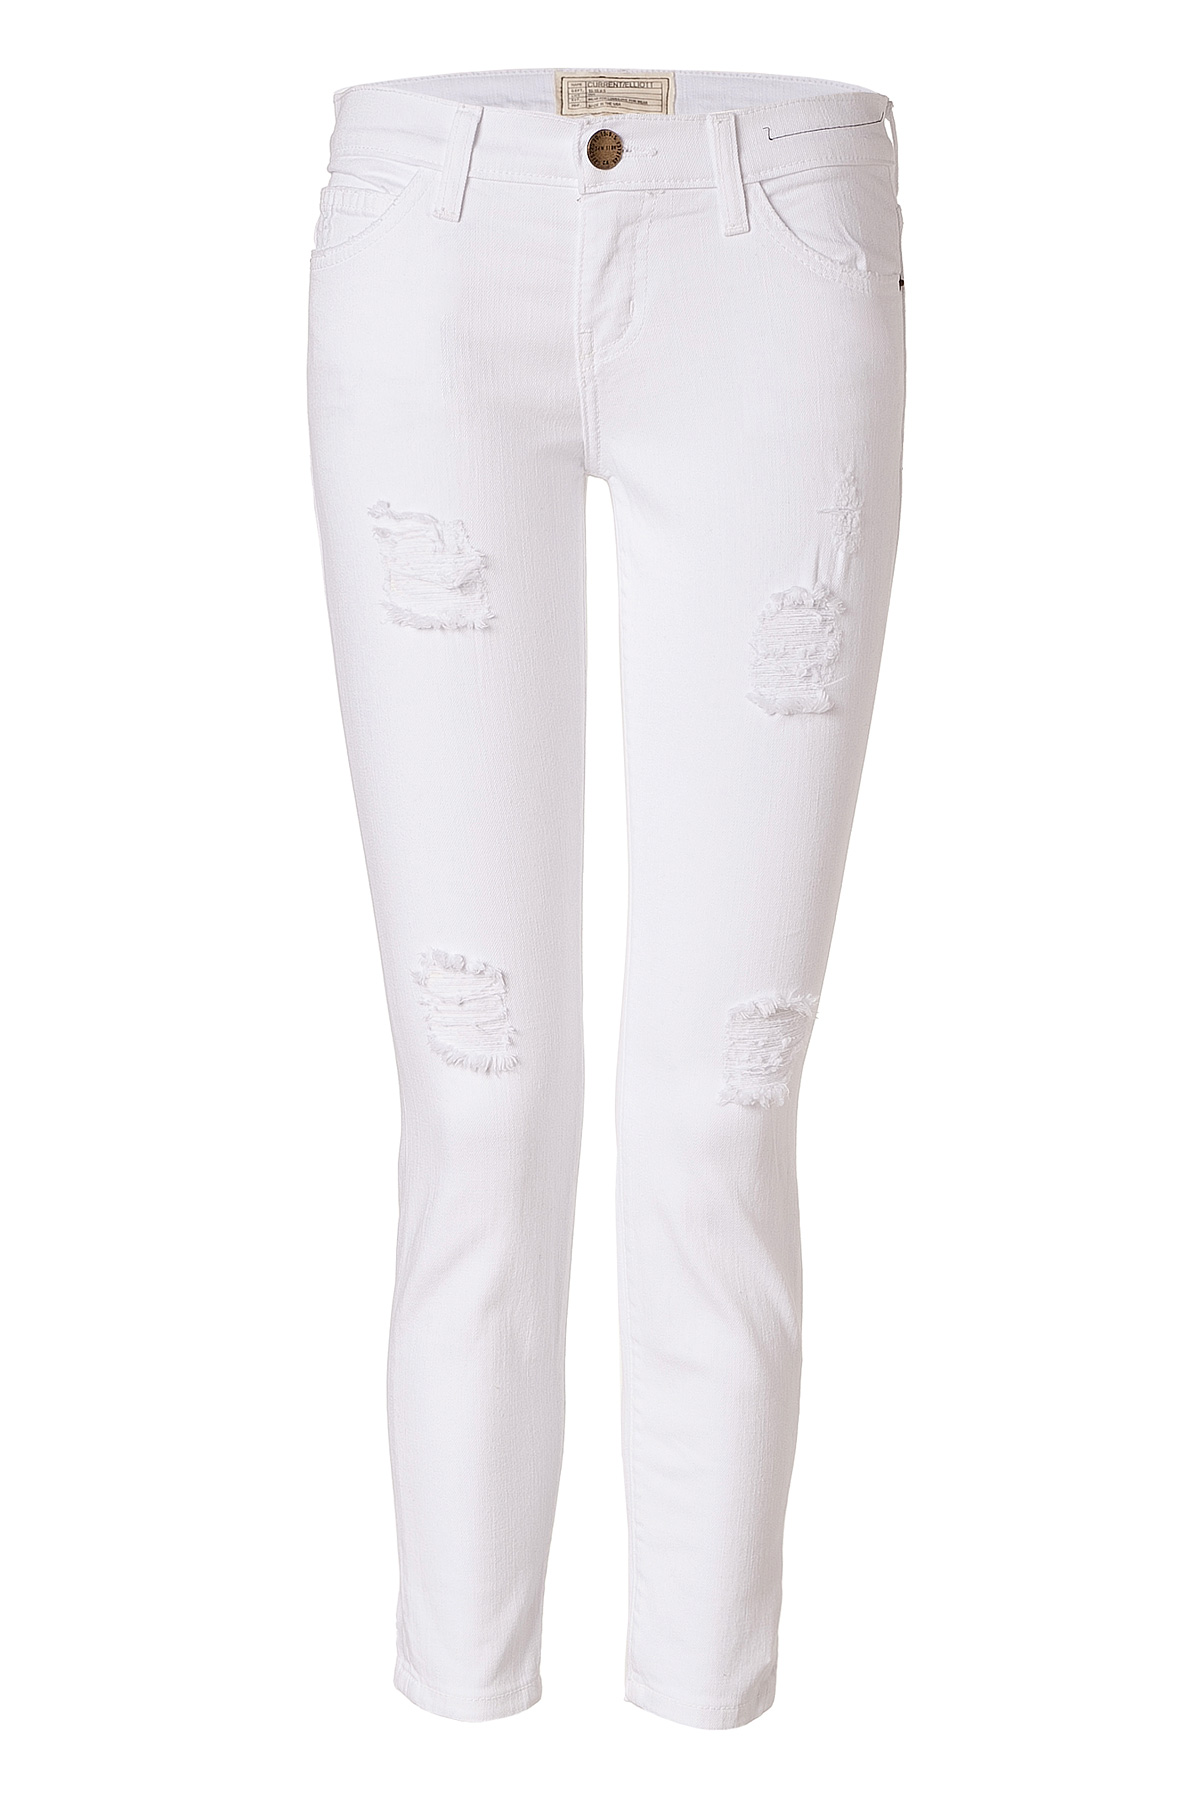 currentelliott-white-the-stiletto-sugar-destroyed-78-jeans-product-1-7429489-892456913.jpeg